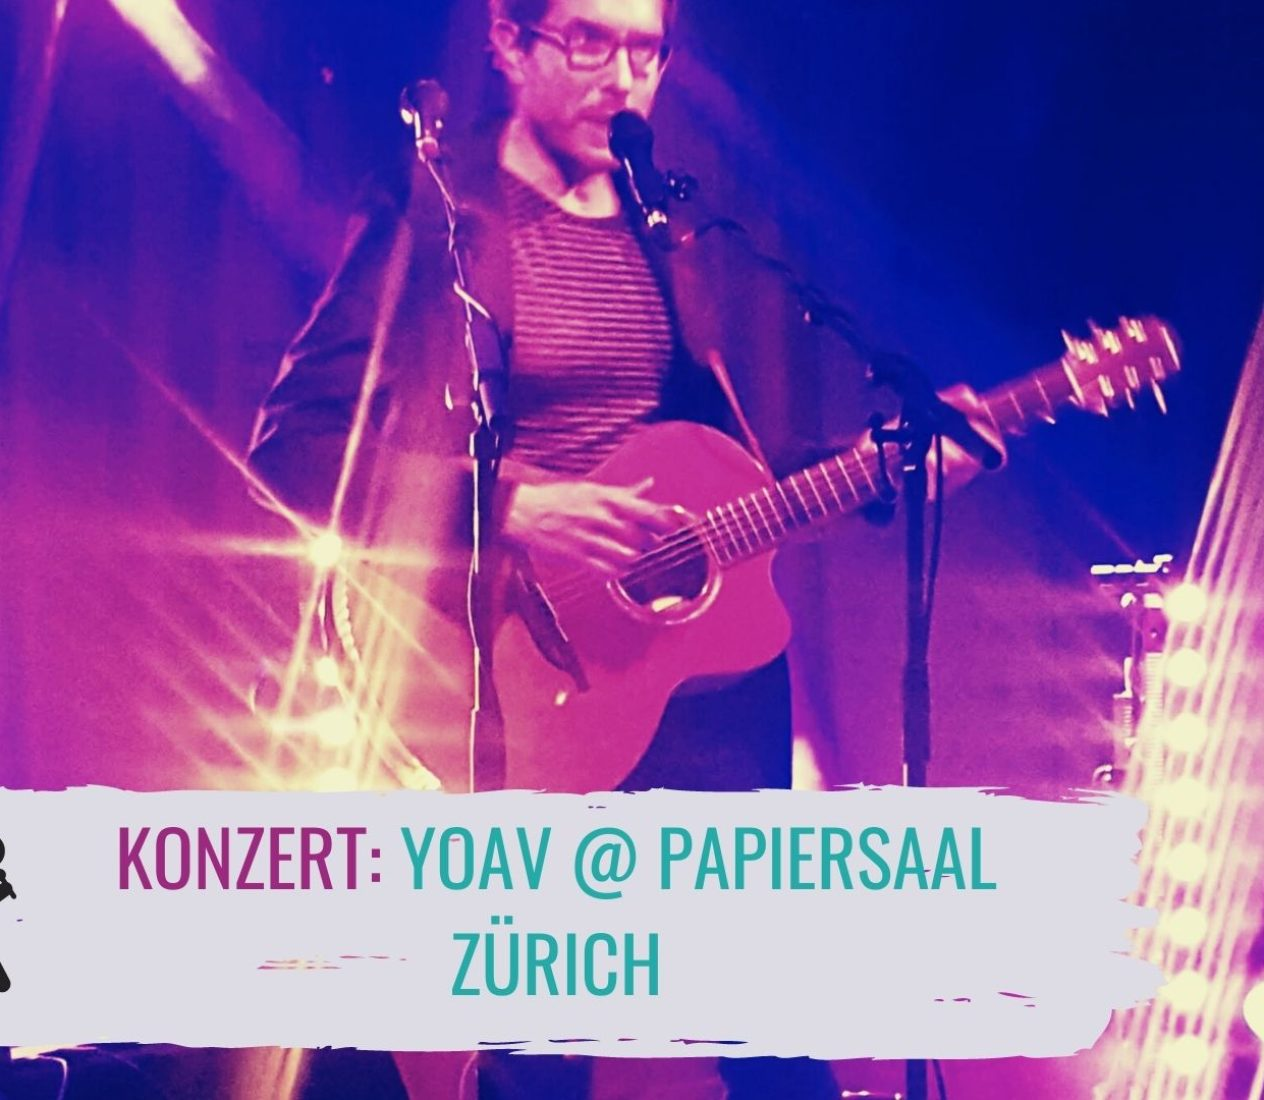 Yoav @ Papiersaal Zürich: So what?